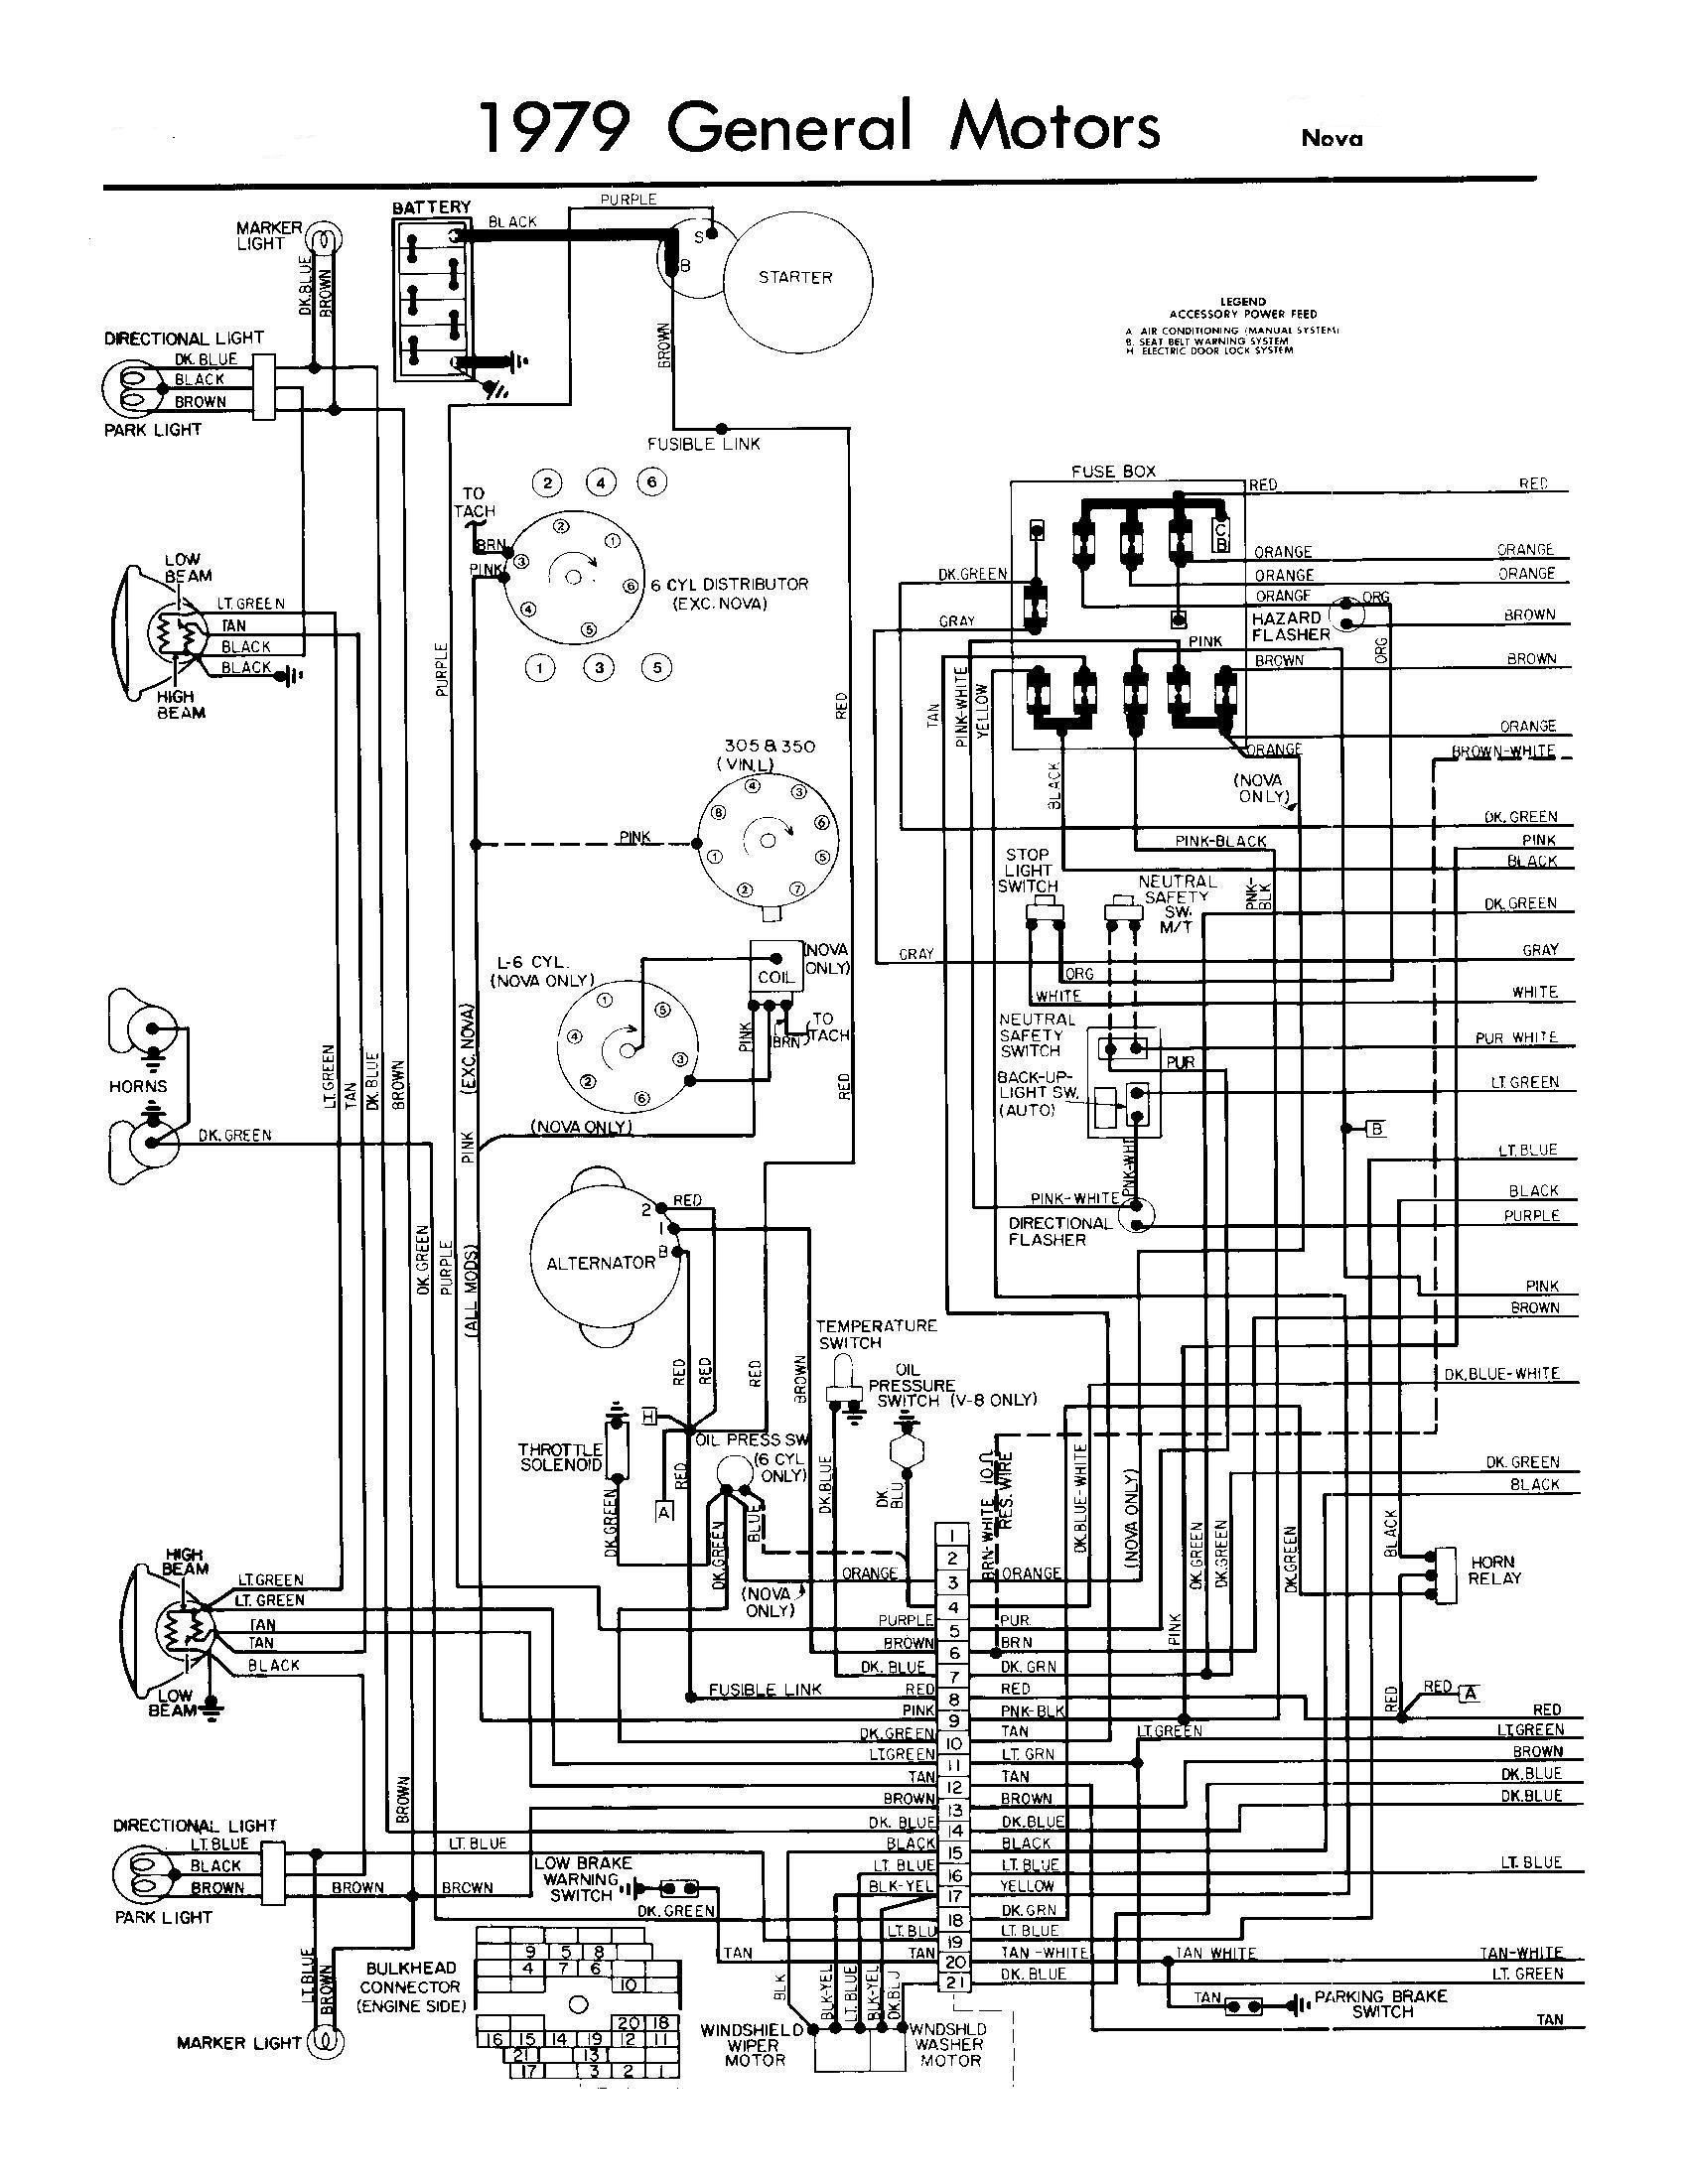 all generation wiring schematics chevy nova forum custom 79 gmc rh pinterest com gmc wiring diagram for trailer GMC Truck Wiring Diagrams